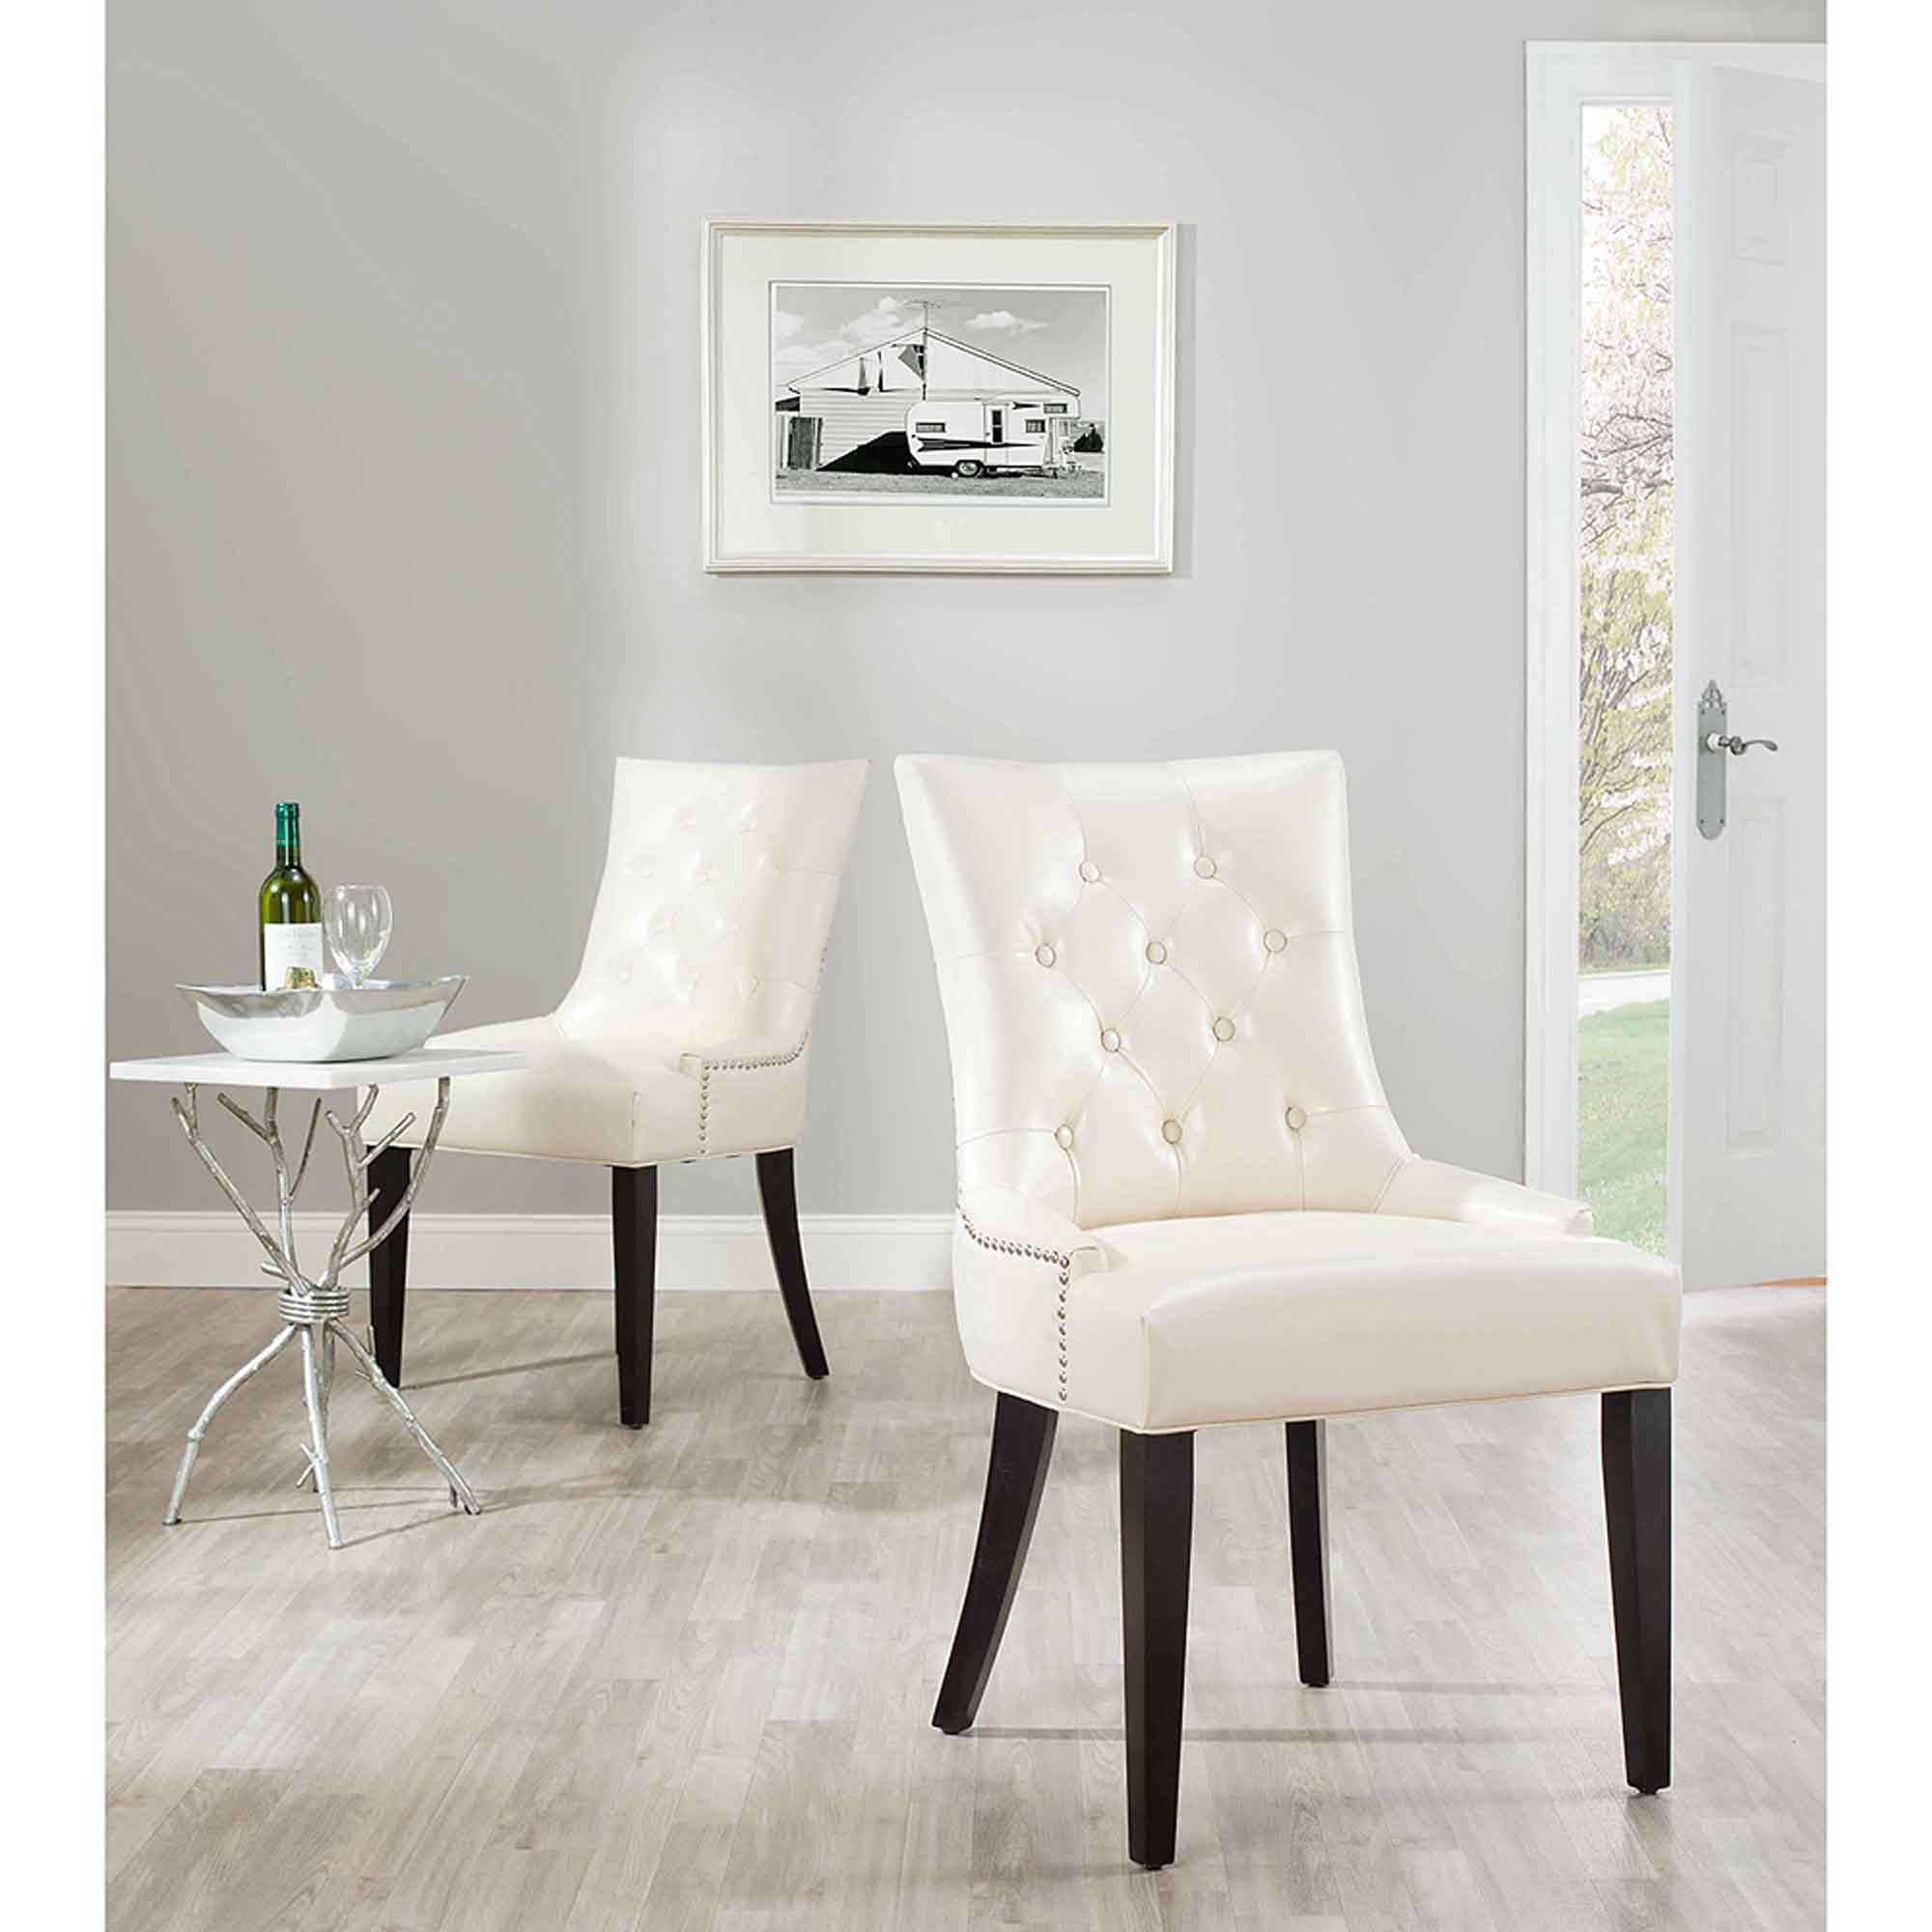 Image of: Safavieh Dining Chairs Pictures